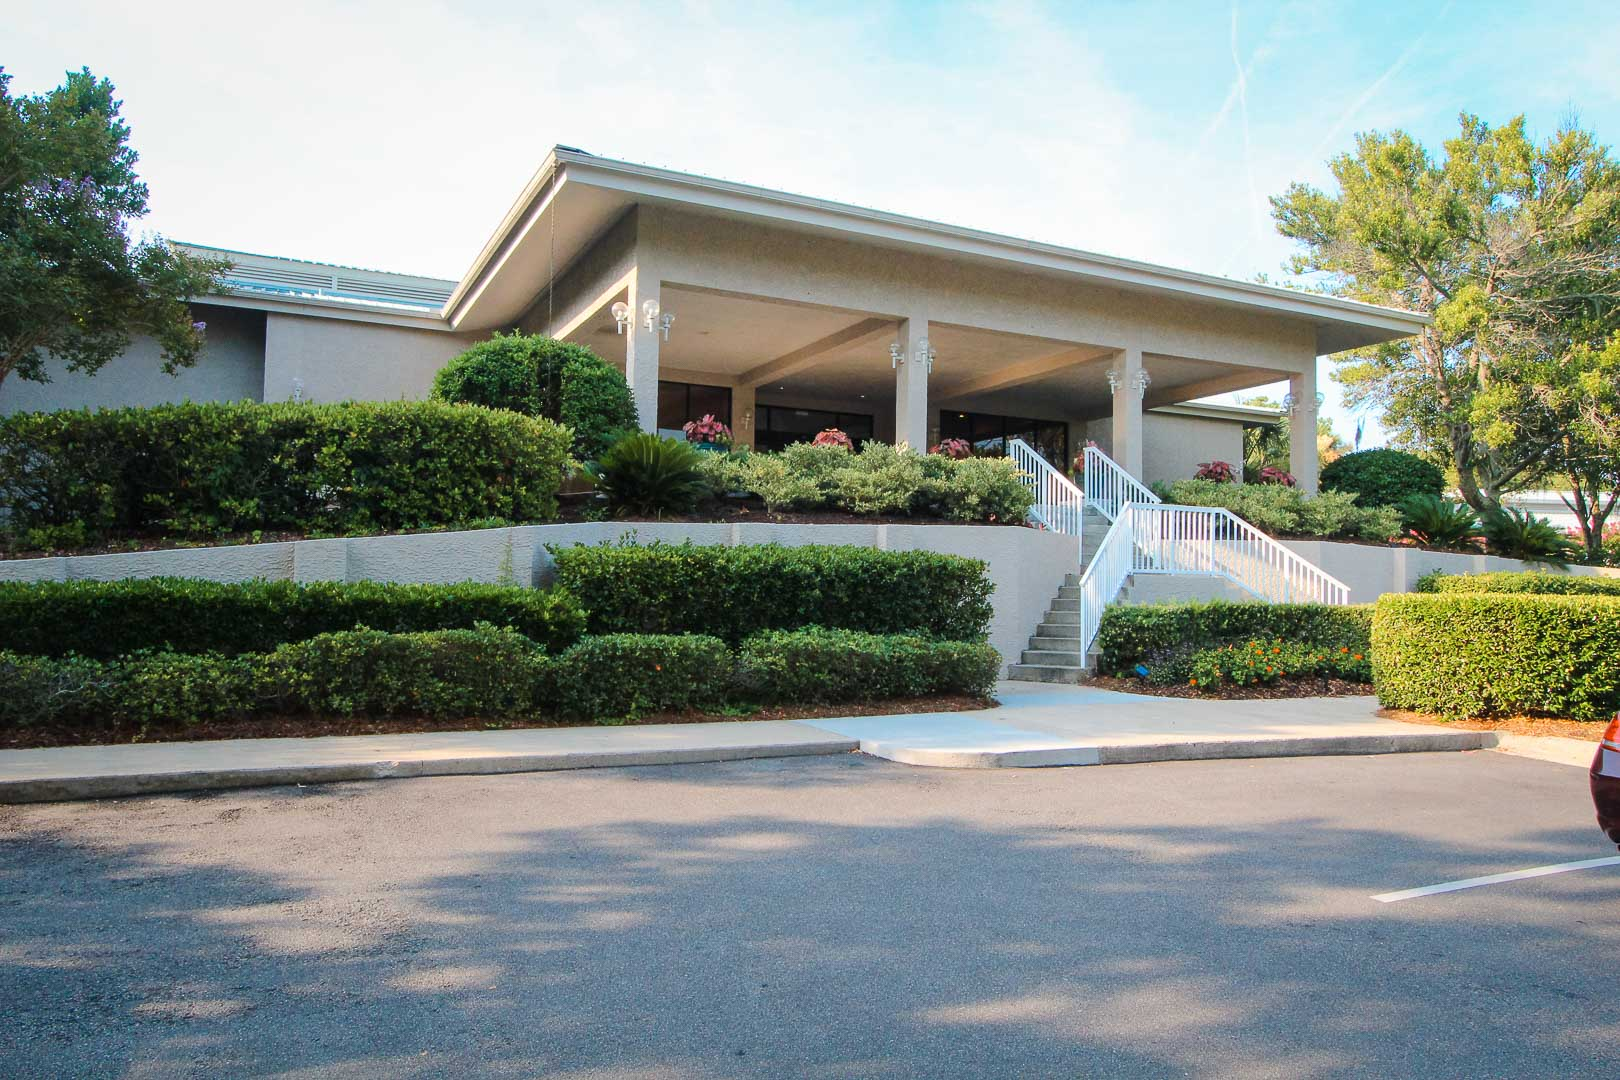 An exterior view of the lobby at VRI's Players Club Resort in Hilton Head Island, South Carolina.